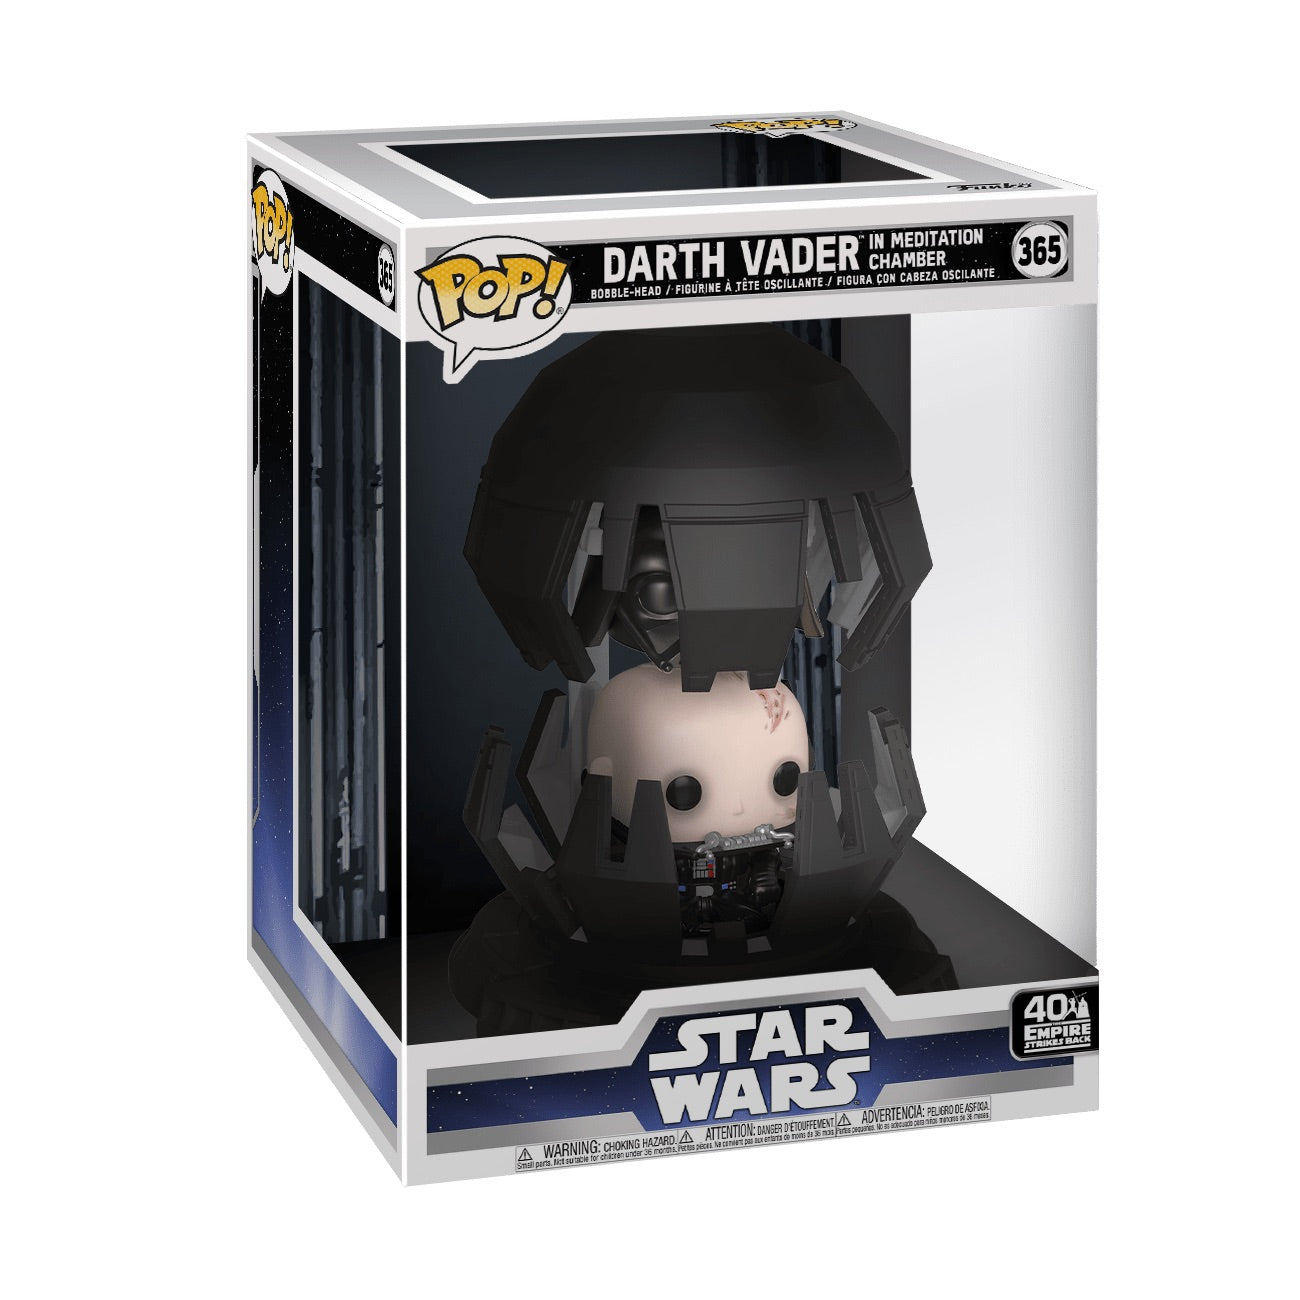 Star Wars Darth Vader in Meditation Deluxe